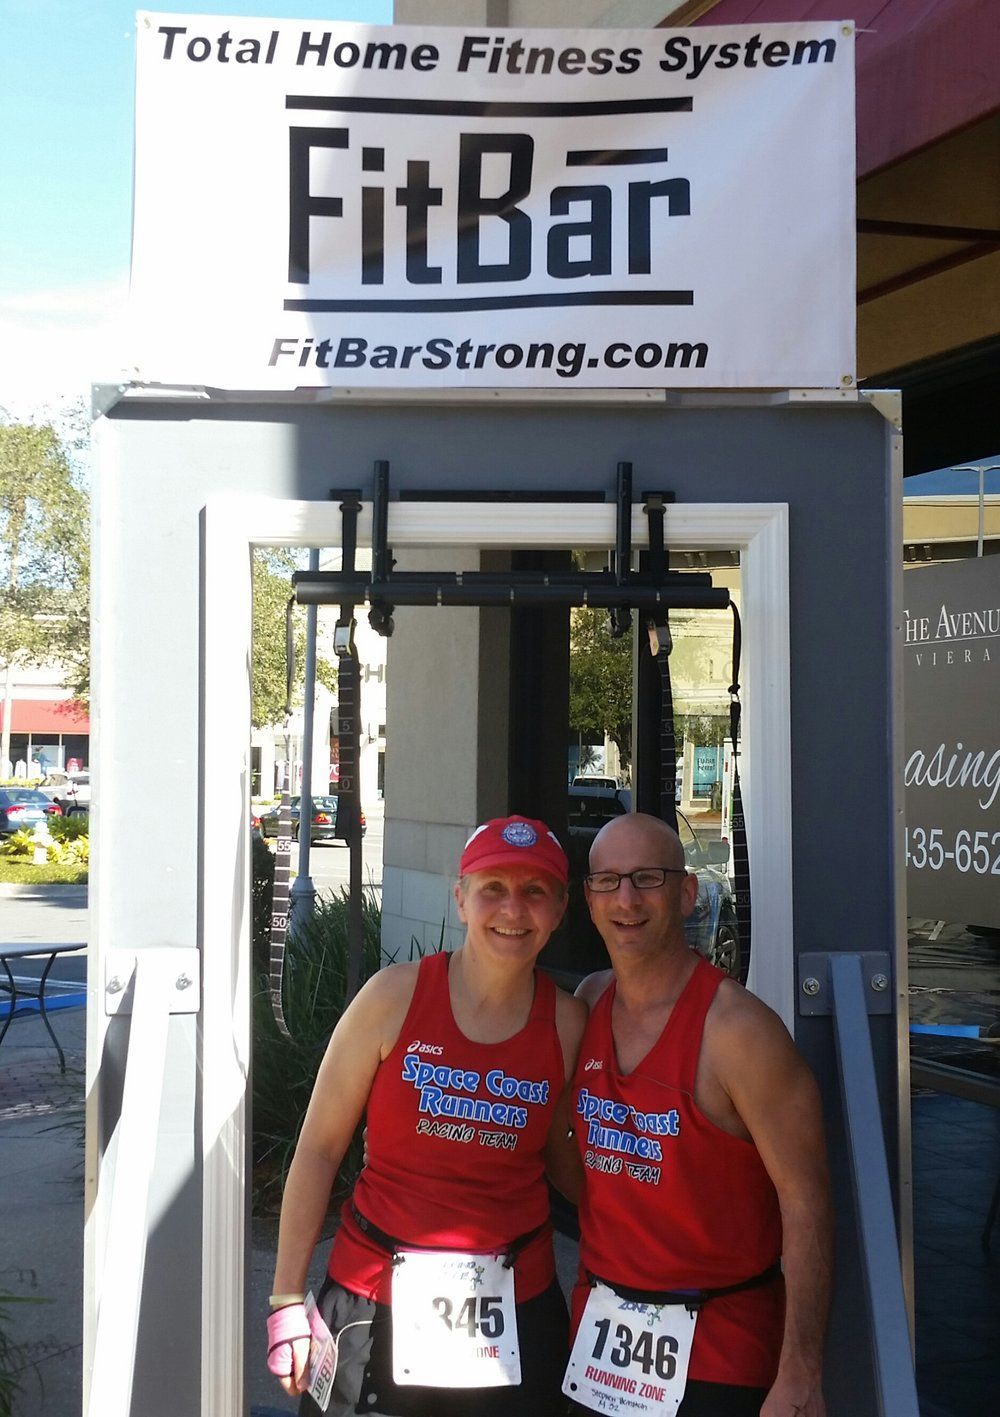 Space Coast Runner FitBar Winner